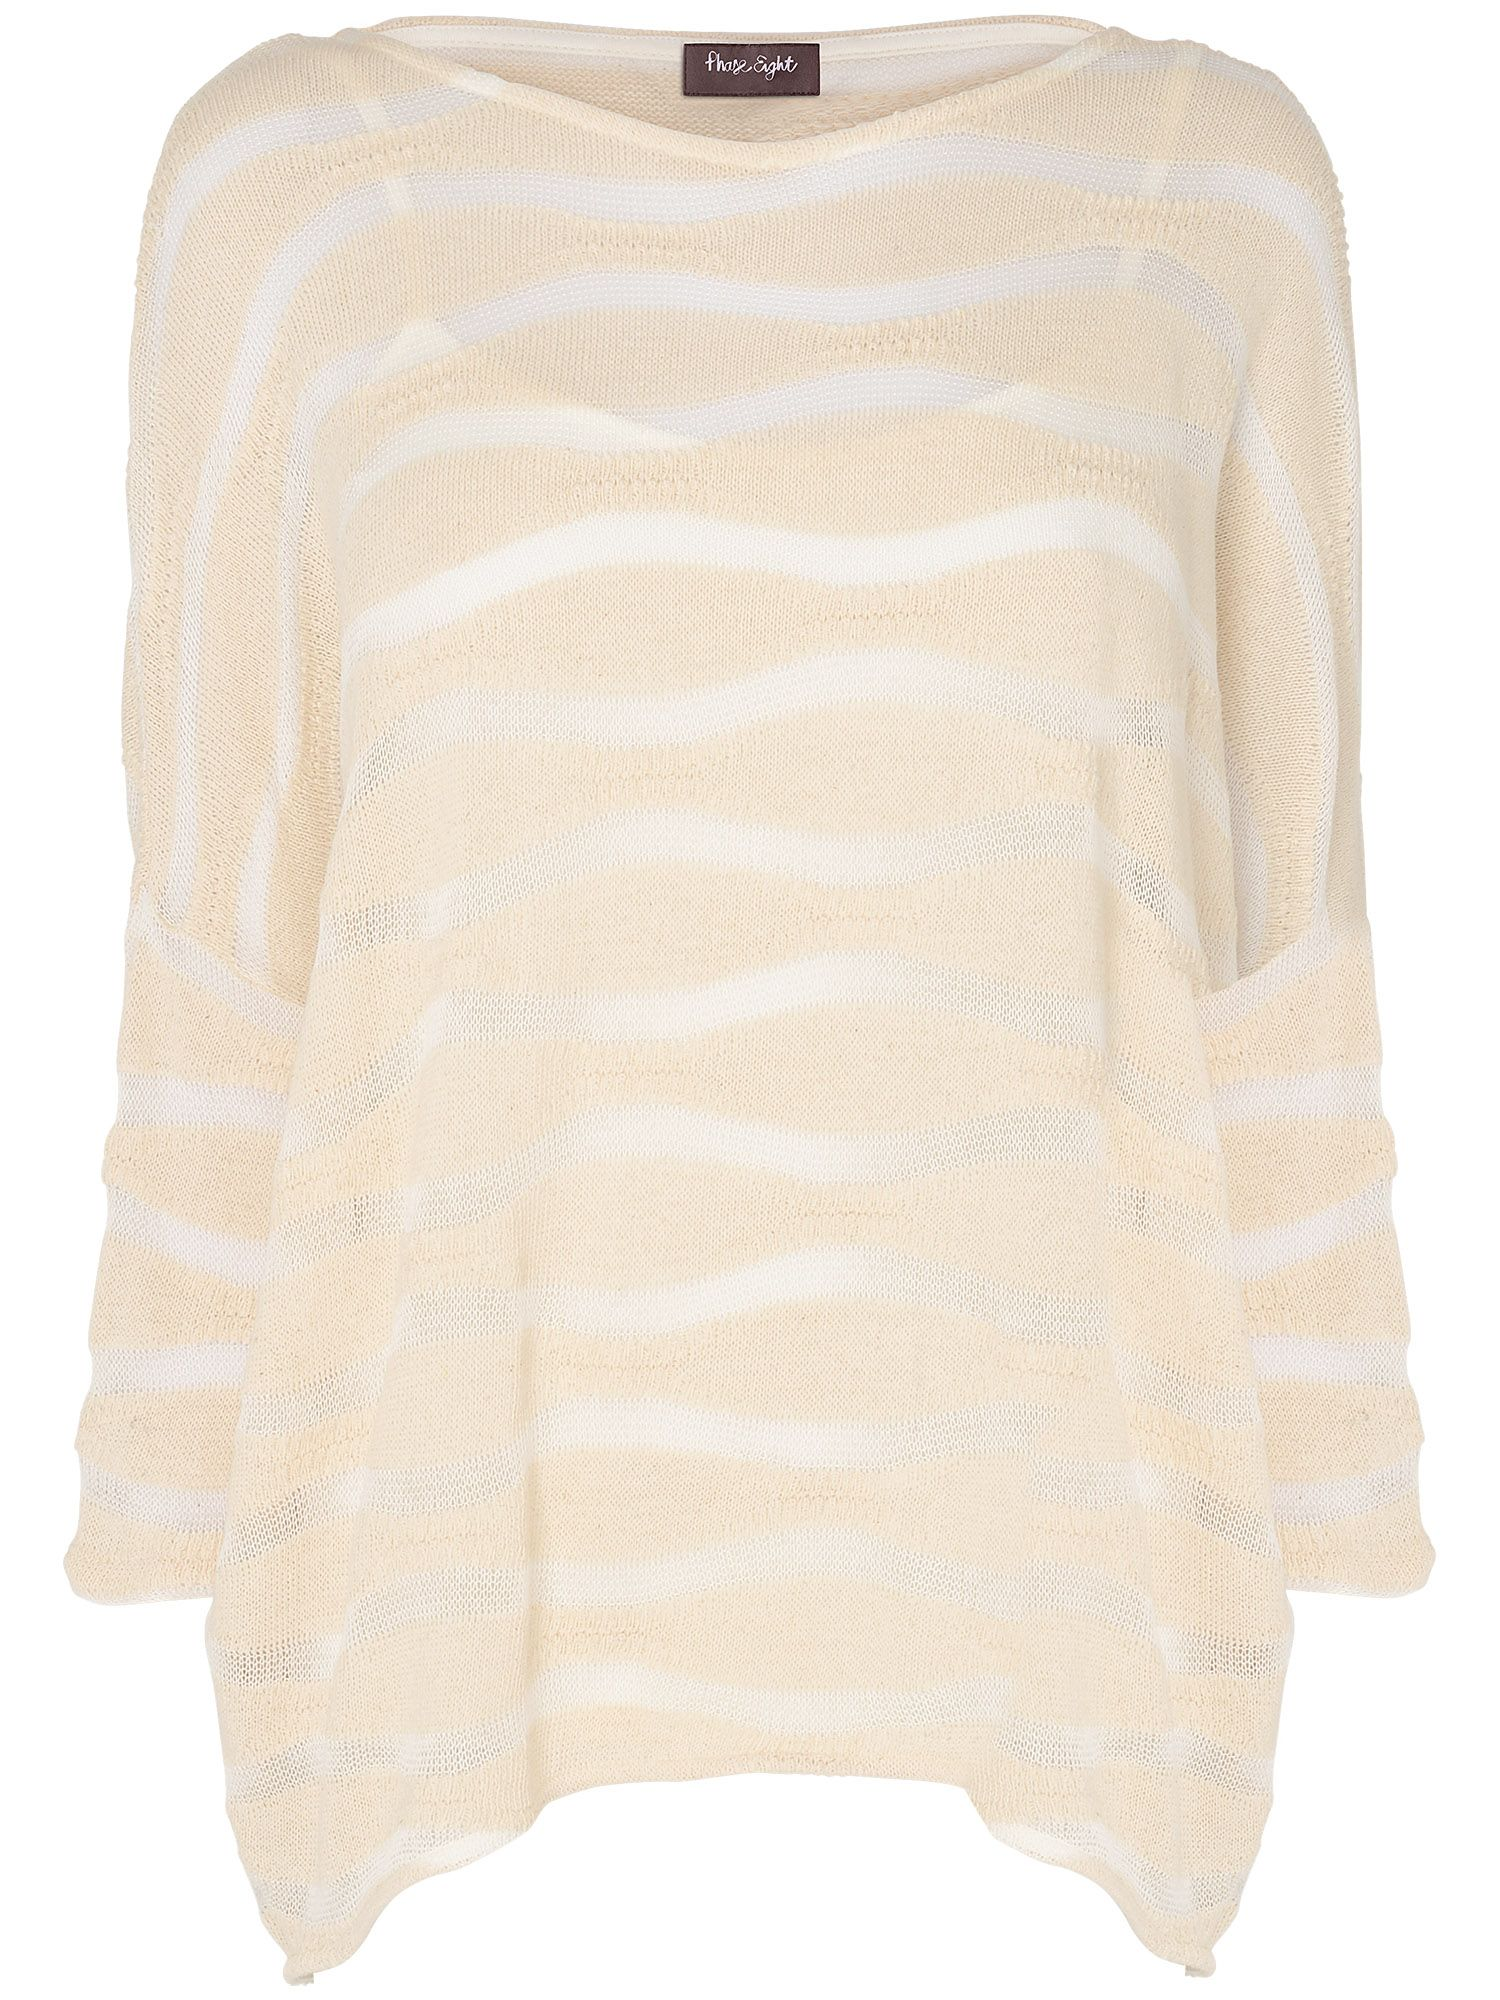 Dania textured stripe top